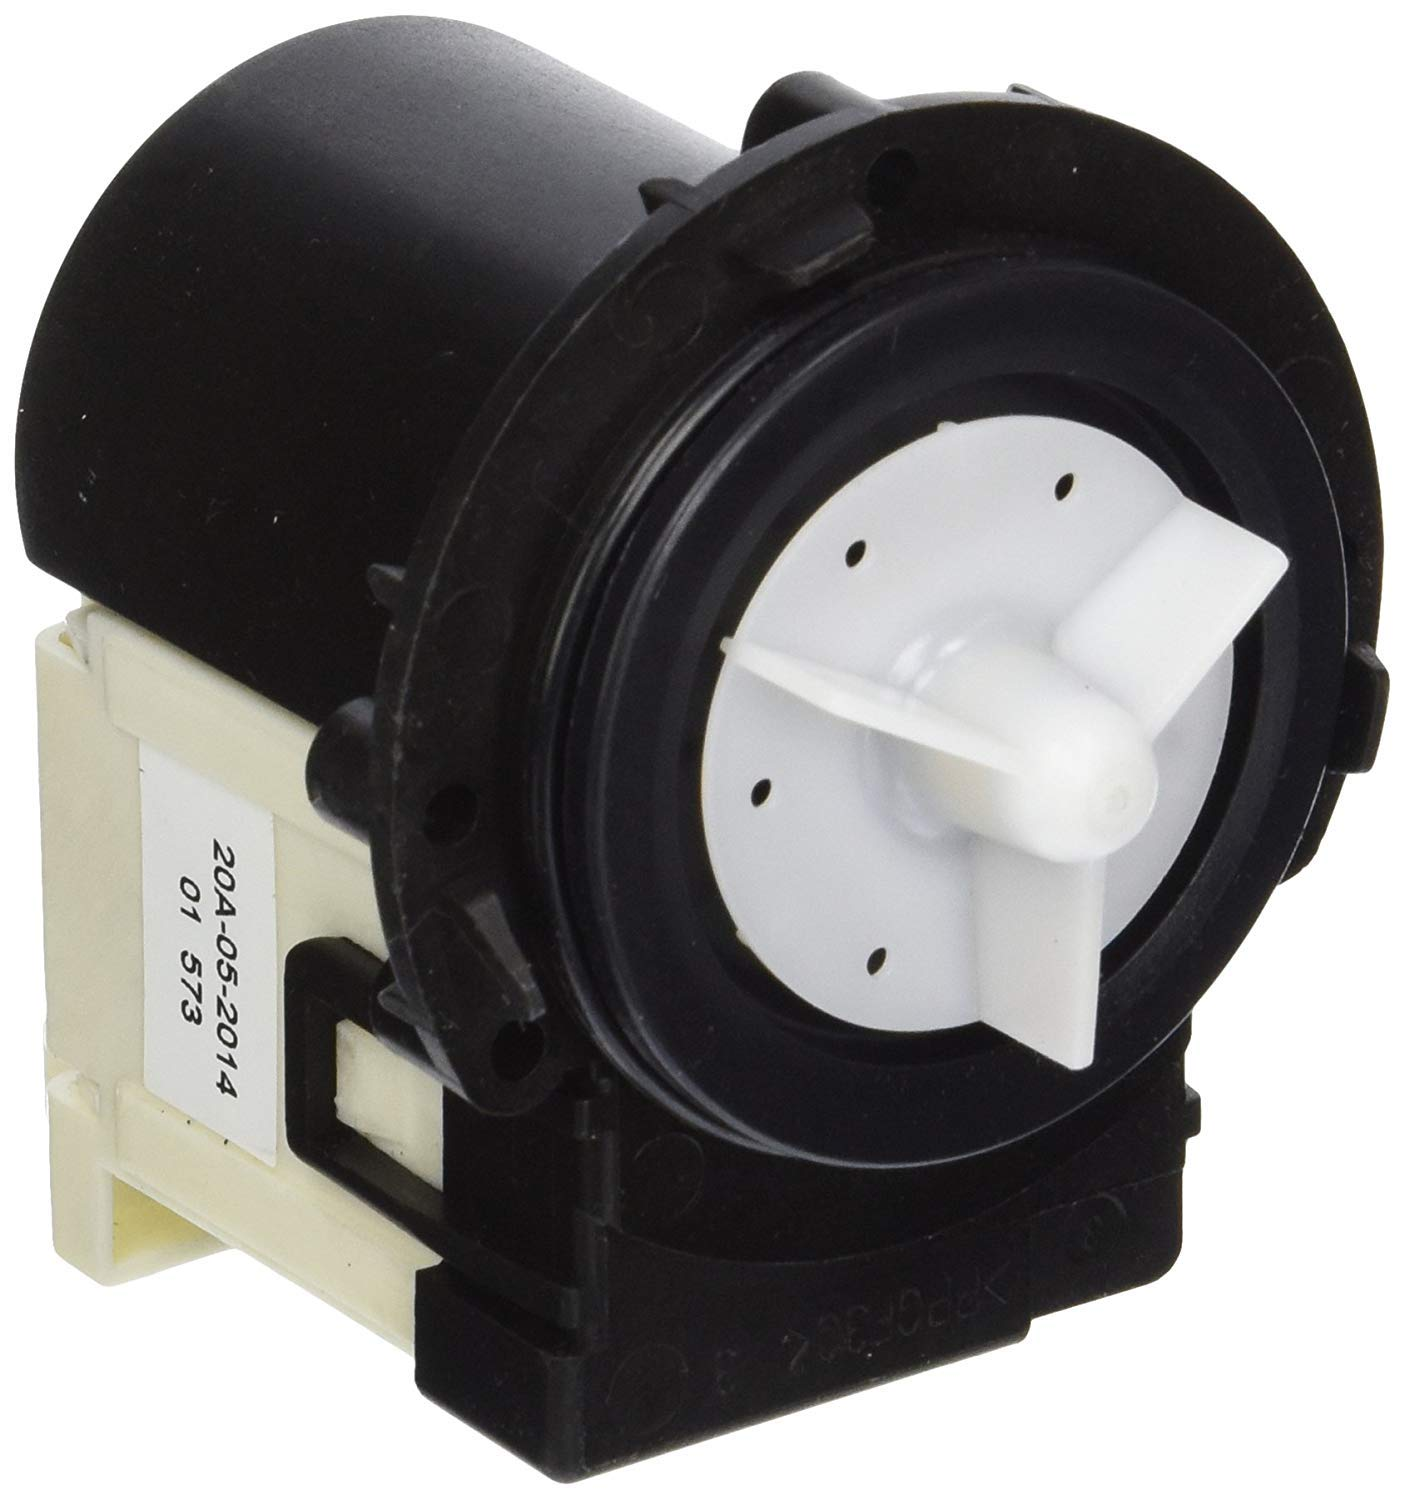 Washer Water Drain Pump that works with LG WM3477HW